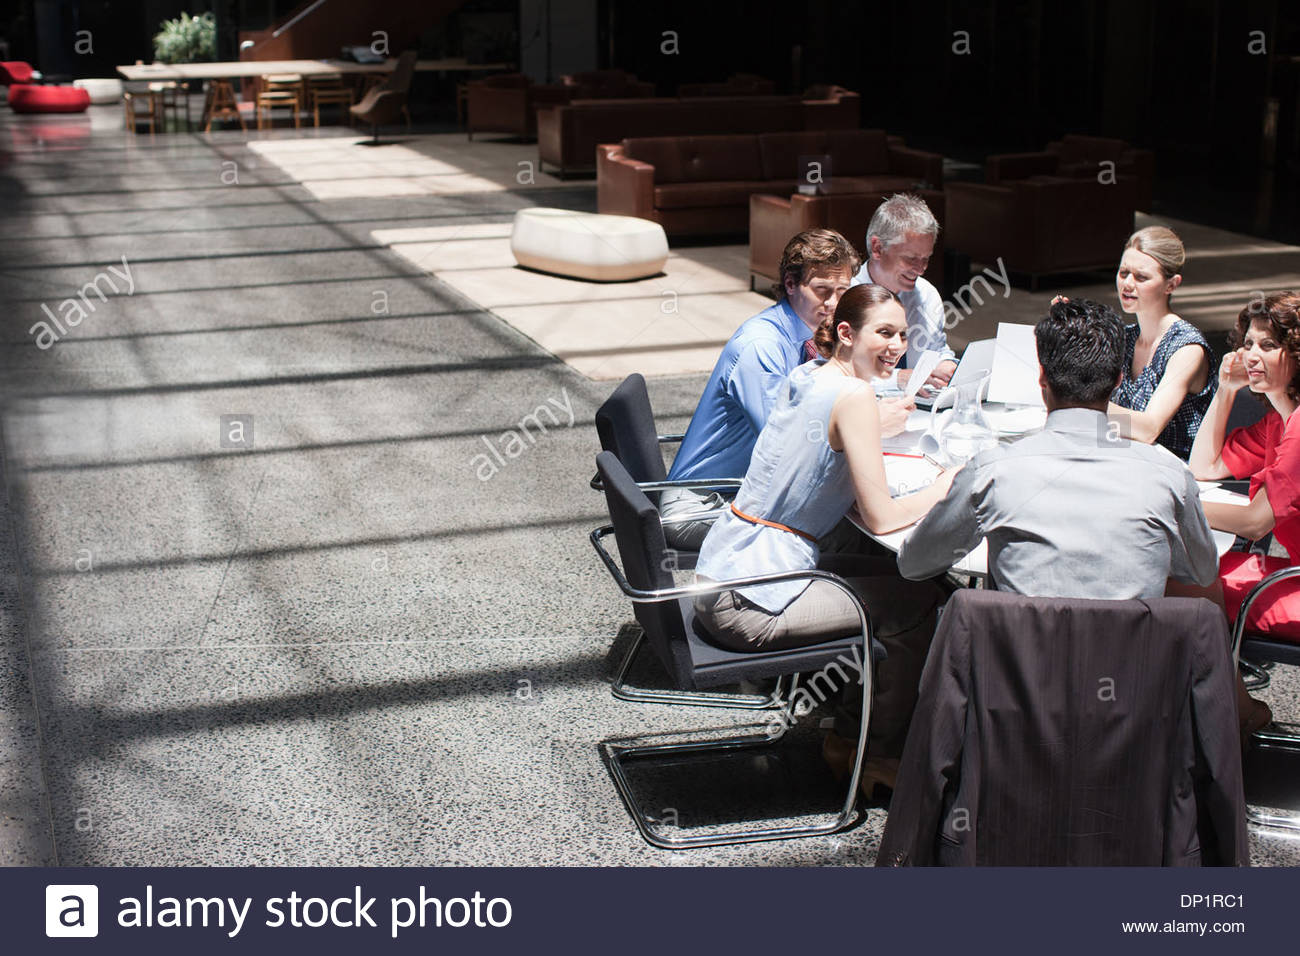 Business people meeting at conference table - Stock Image